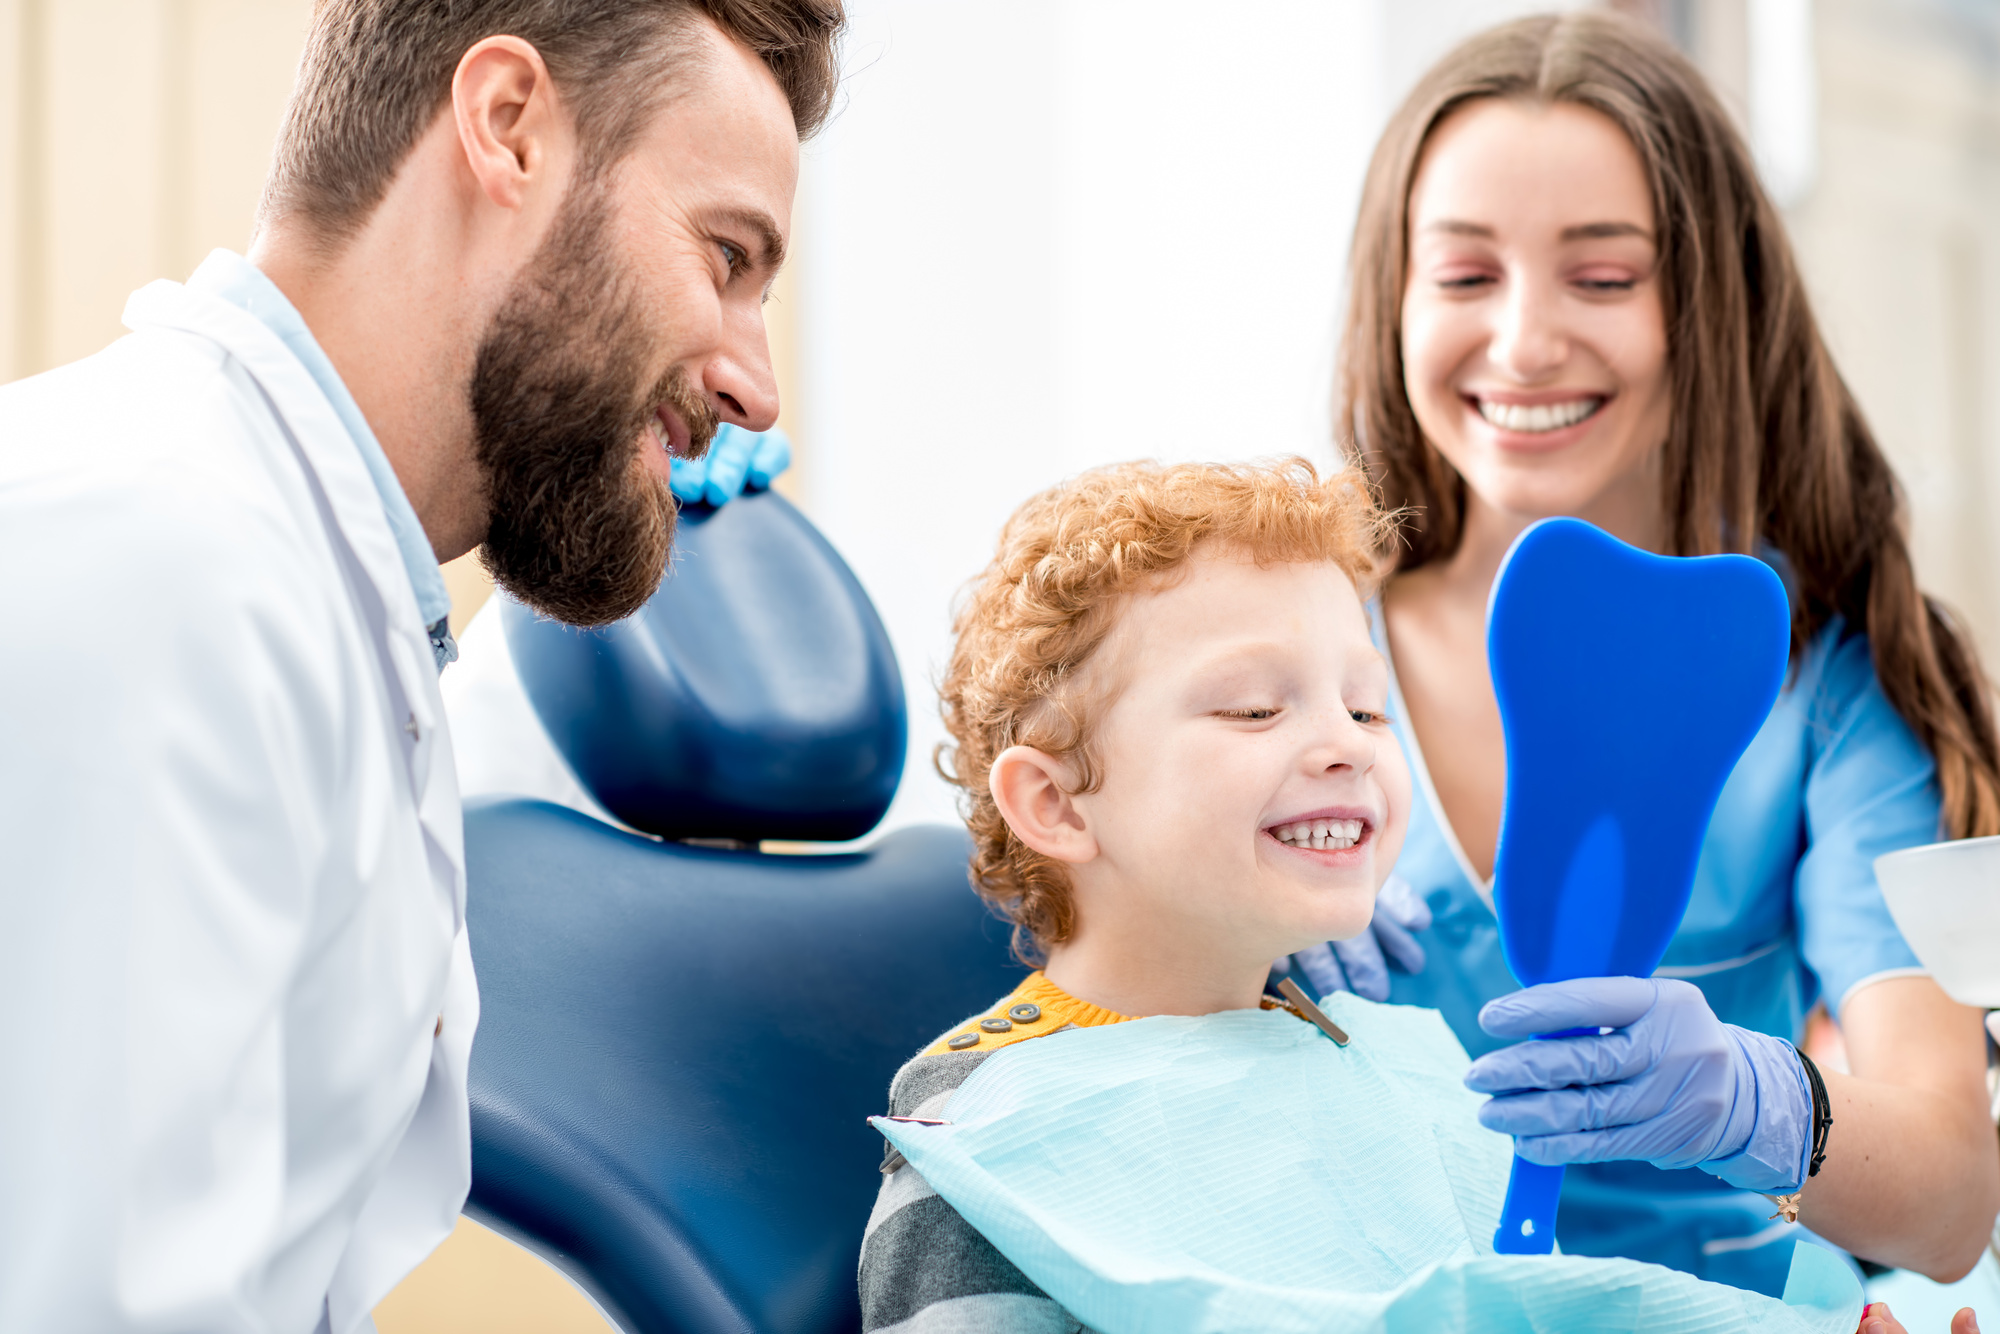 Dental Care for Kids: How Develop Healthy Oral Hygiene Habits Early